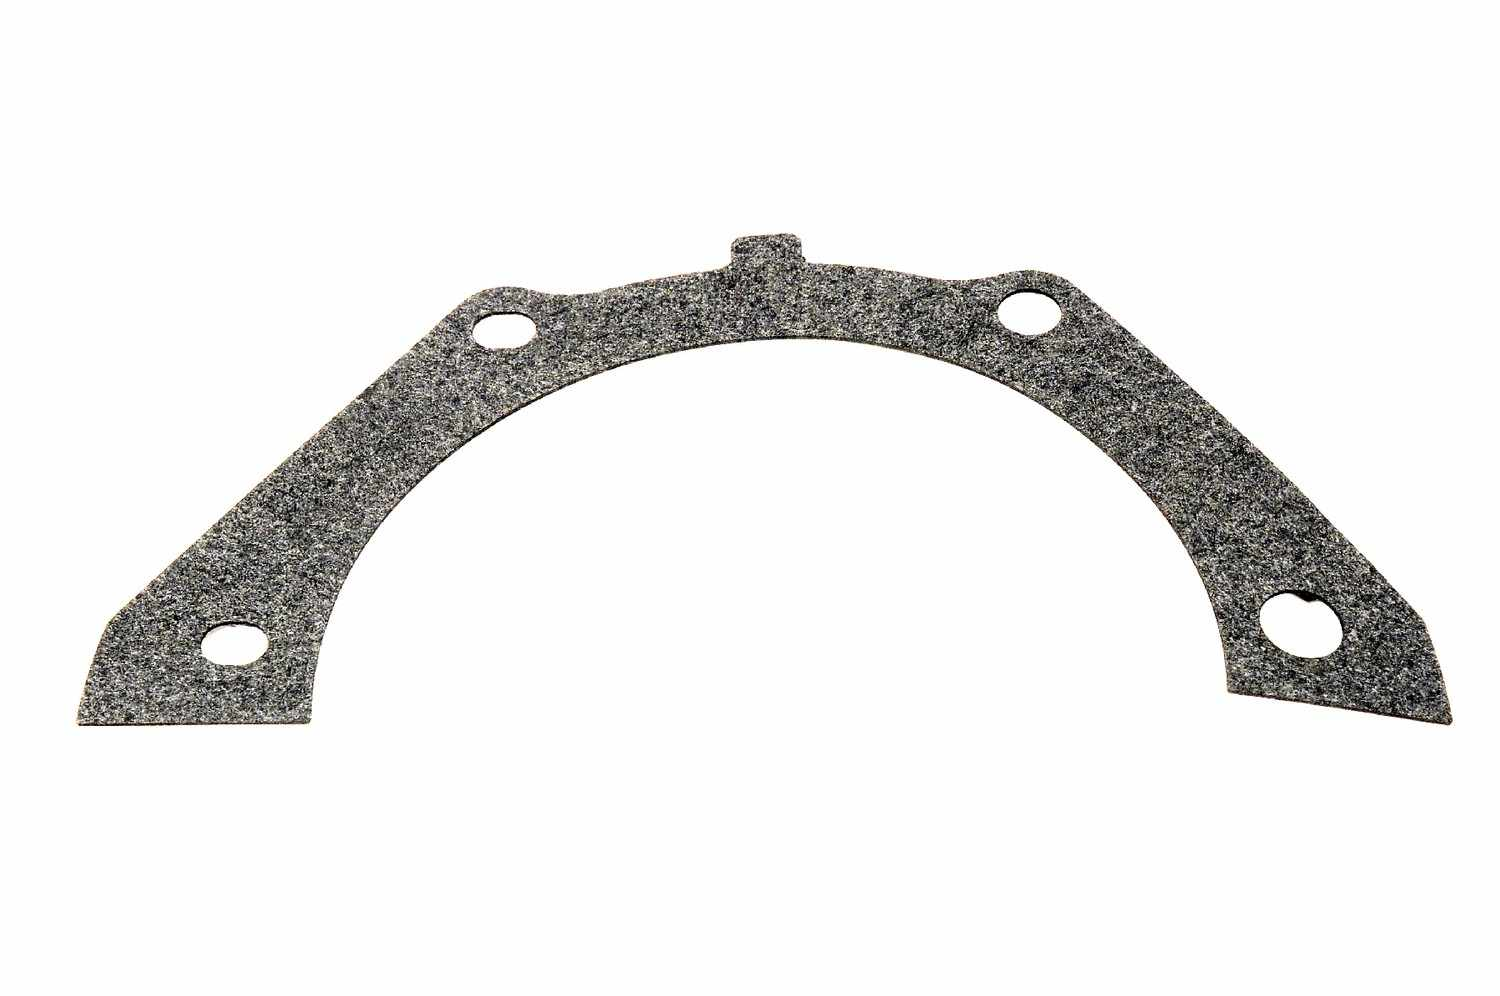 ACDELCO GM ORIGINAL EQUIPMENT - Engine Crankshaft Sealing Flange Gasket - DCB 12555771